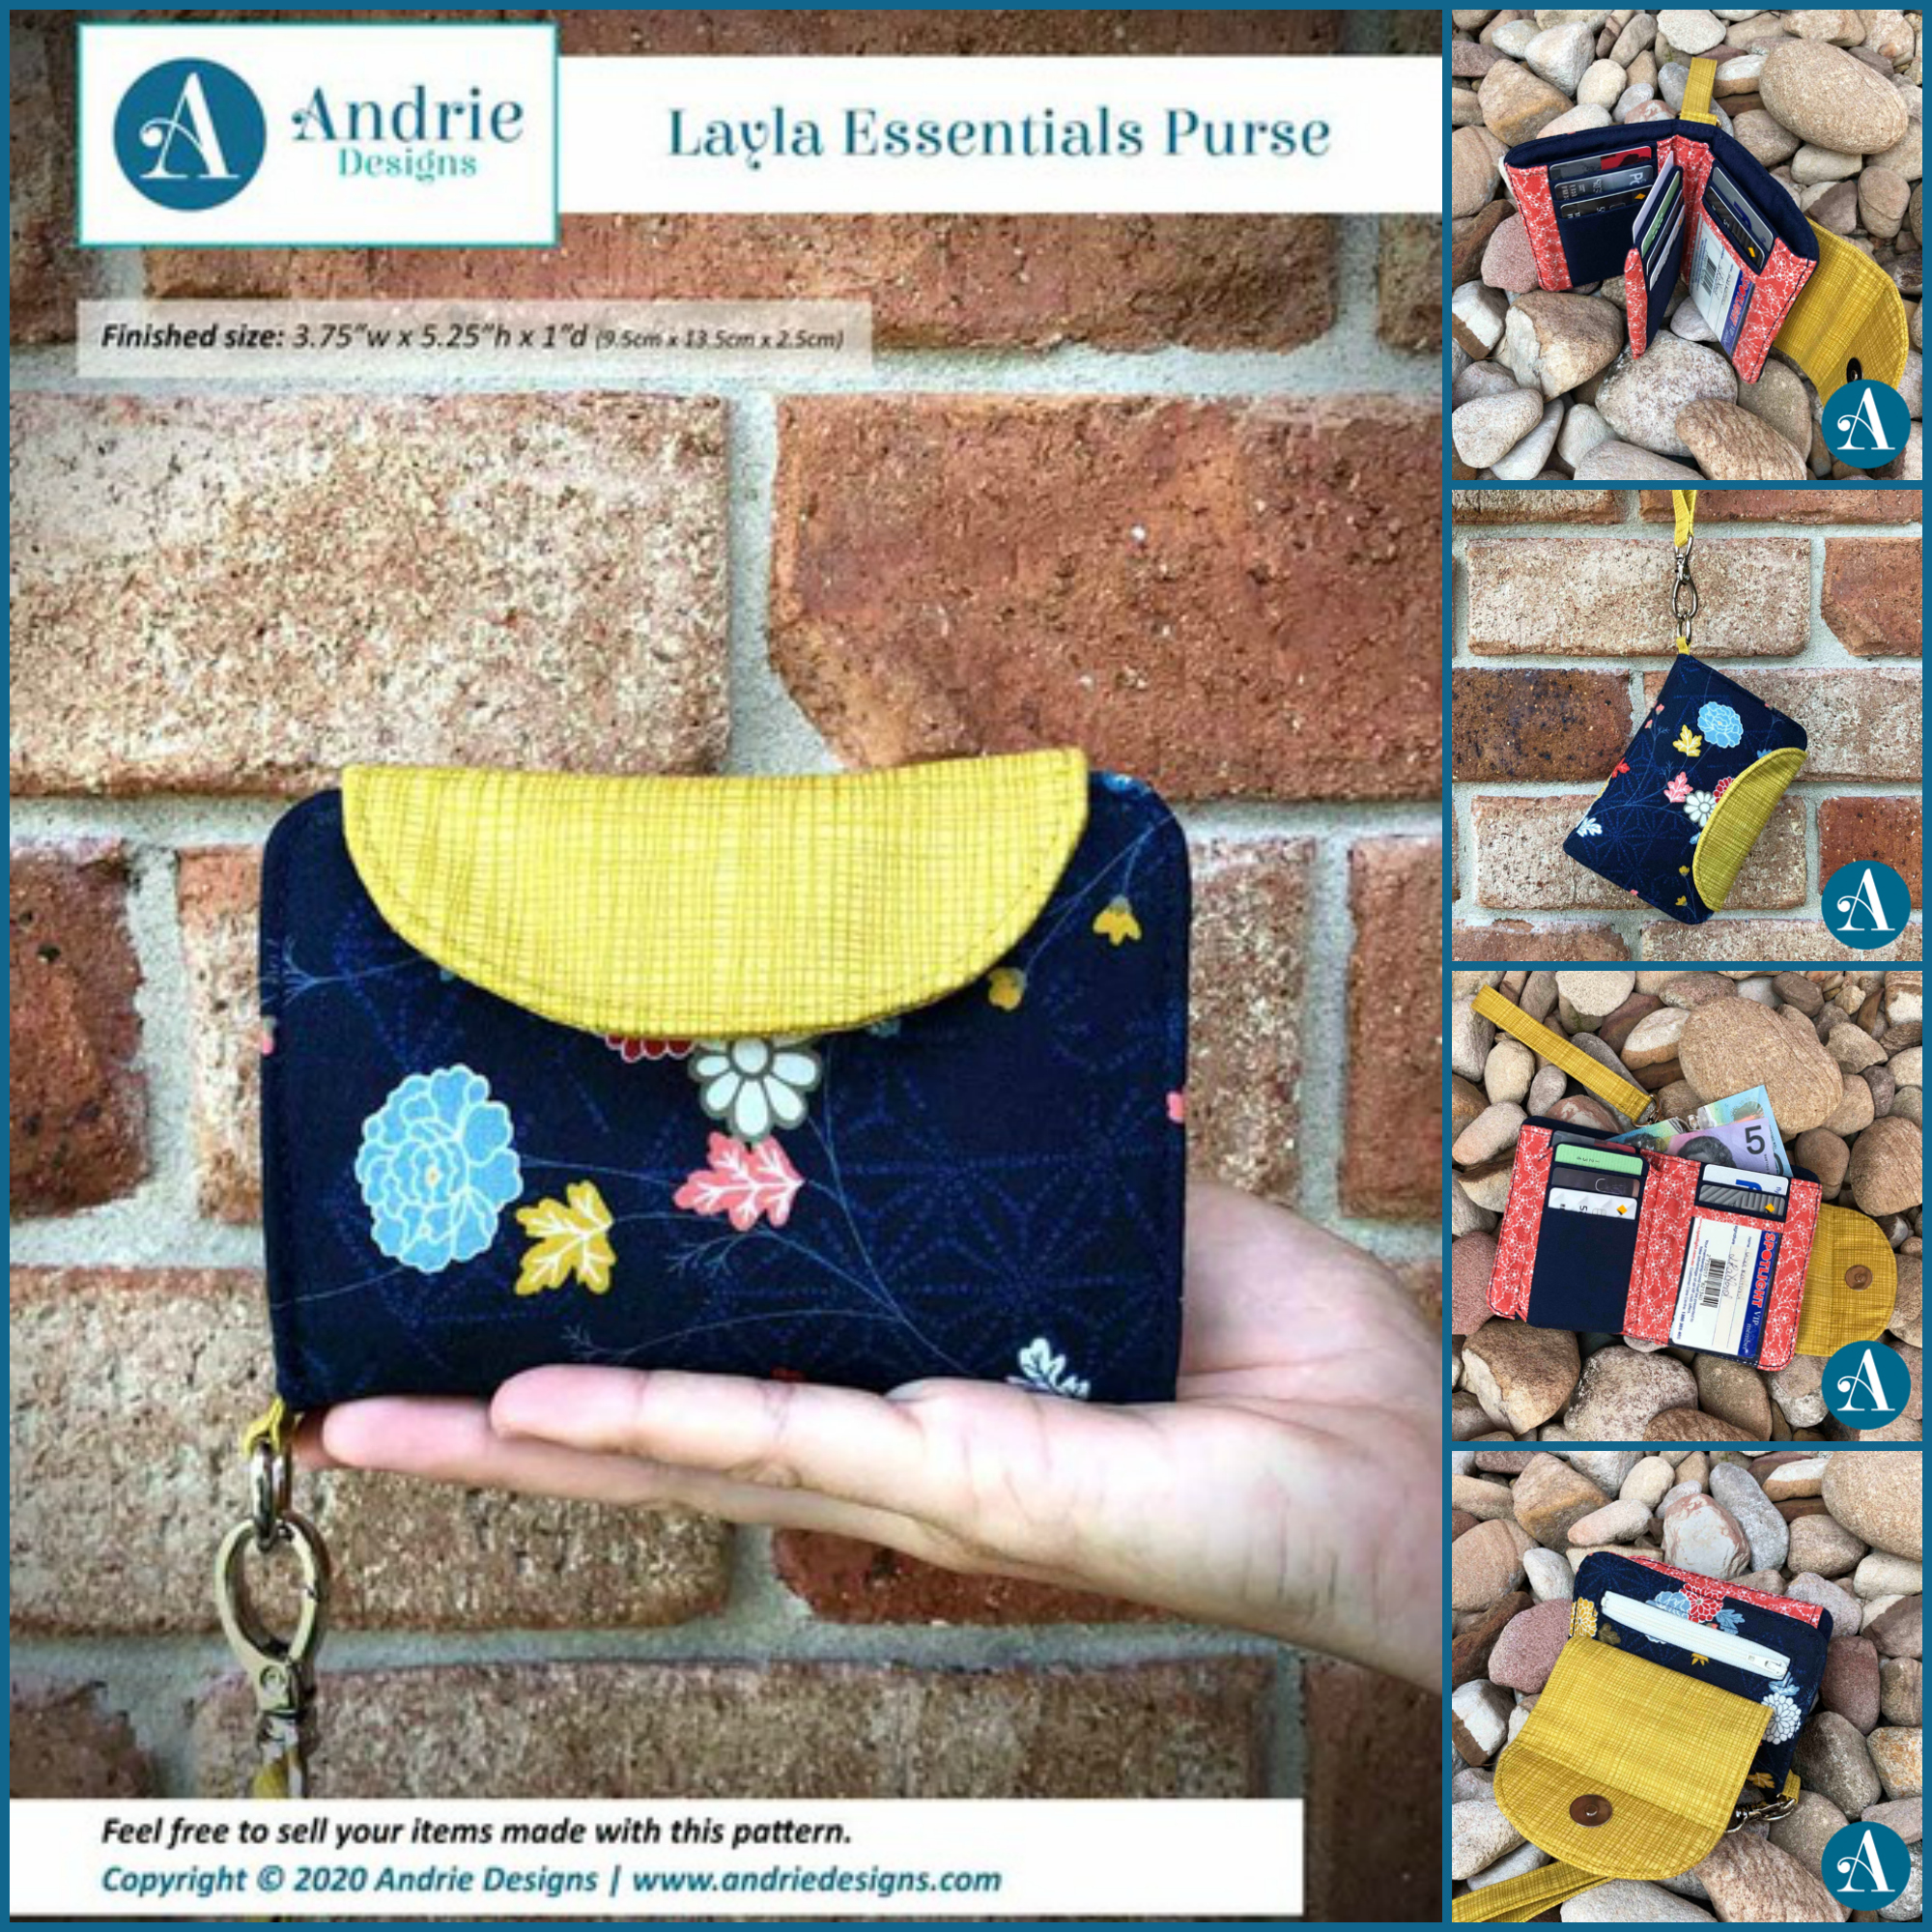 The Layla Essentials Purse by Andrie Designs